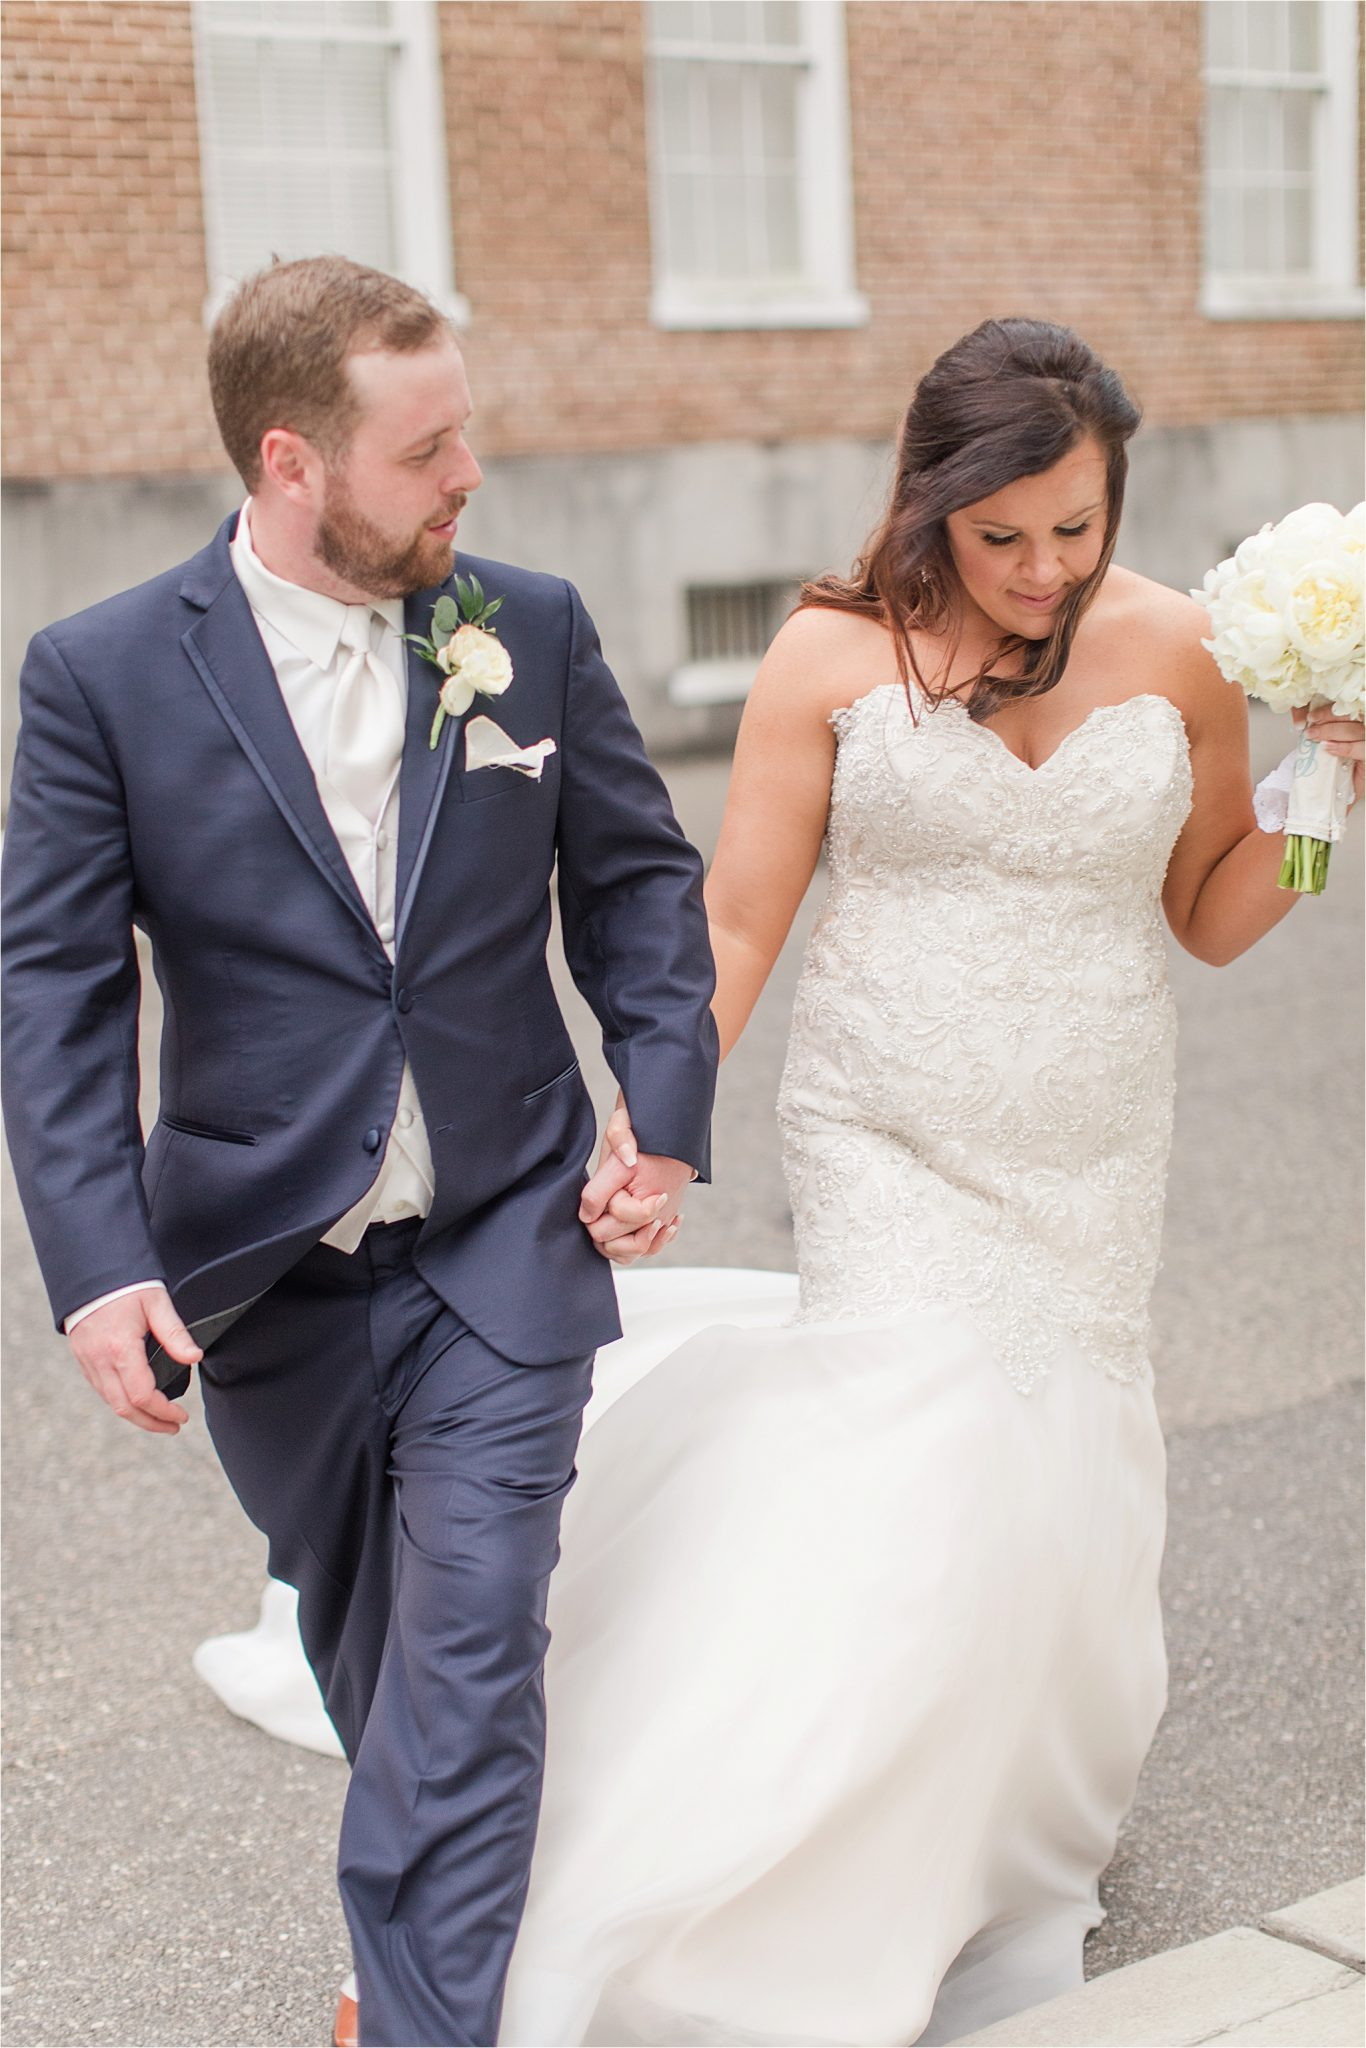 bride and groom photos-navy suit-white roses-wedding day photos-white tie-husband and wife photos-holding hands-navy suit-white tie